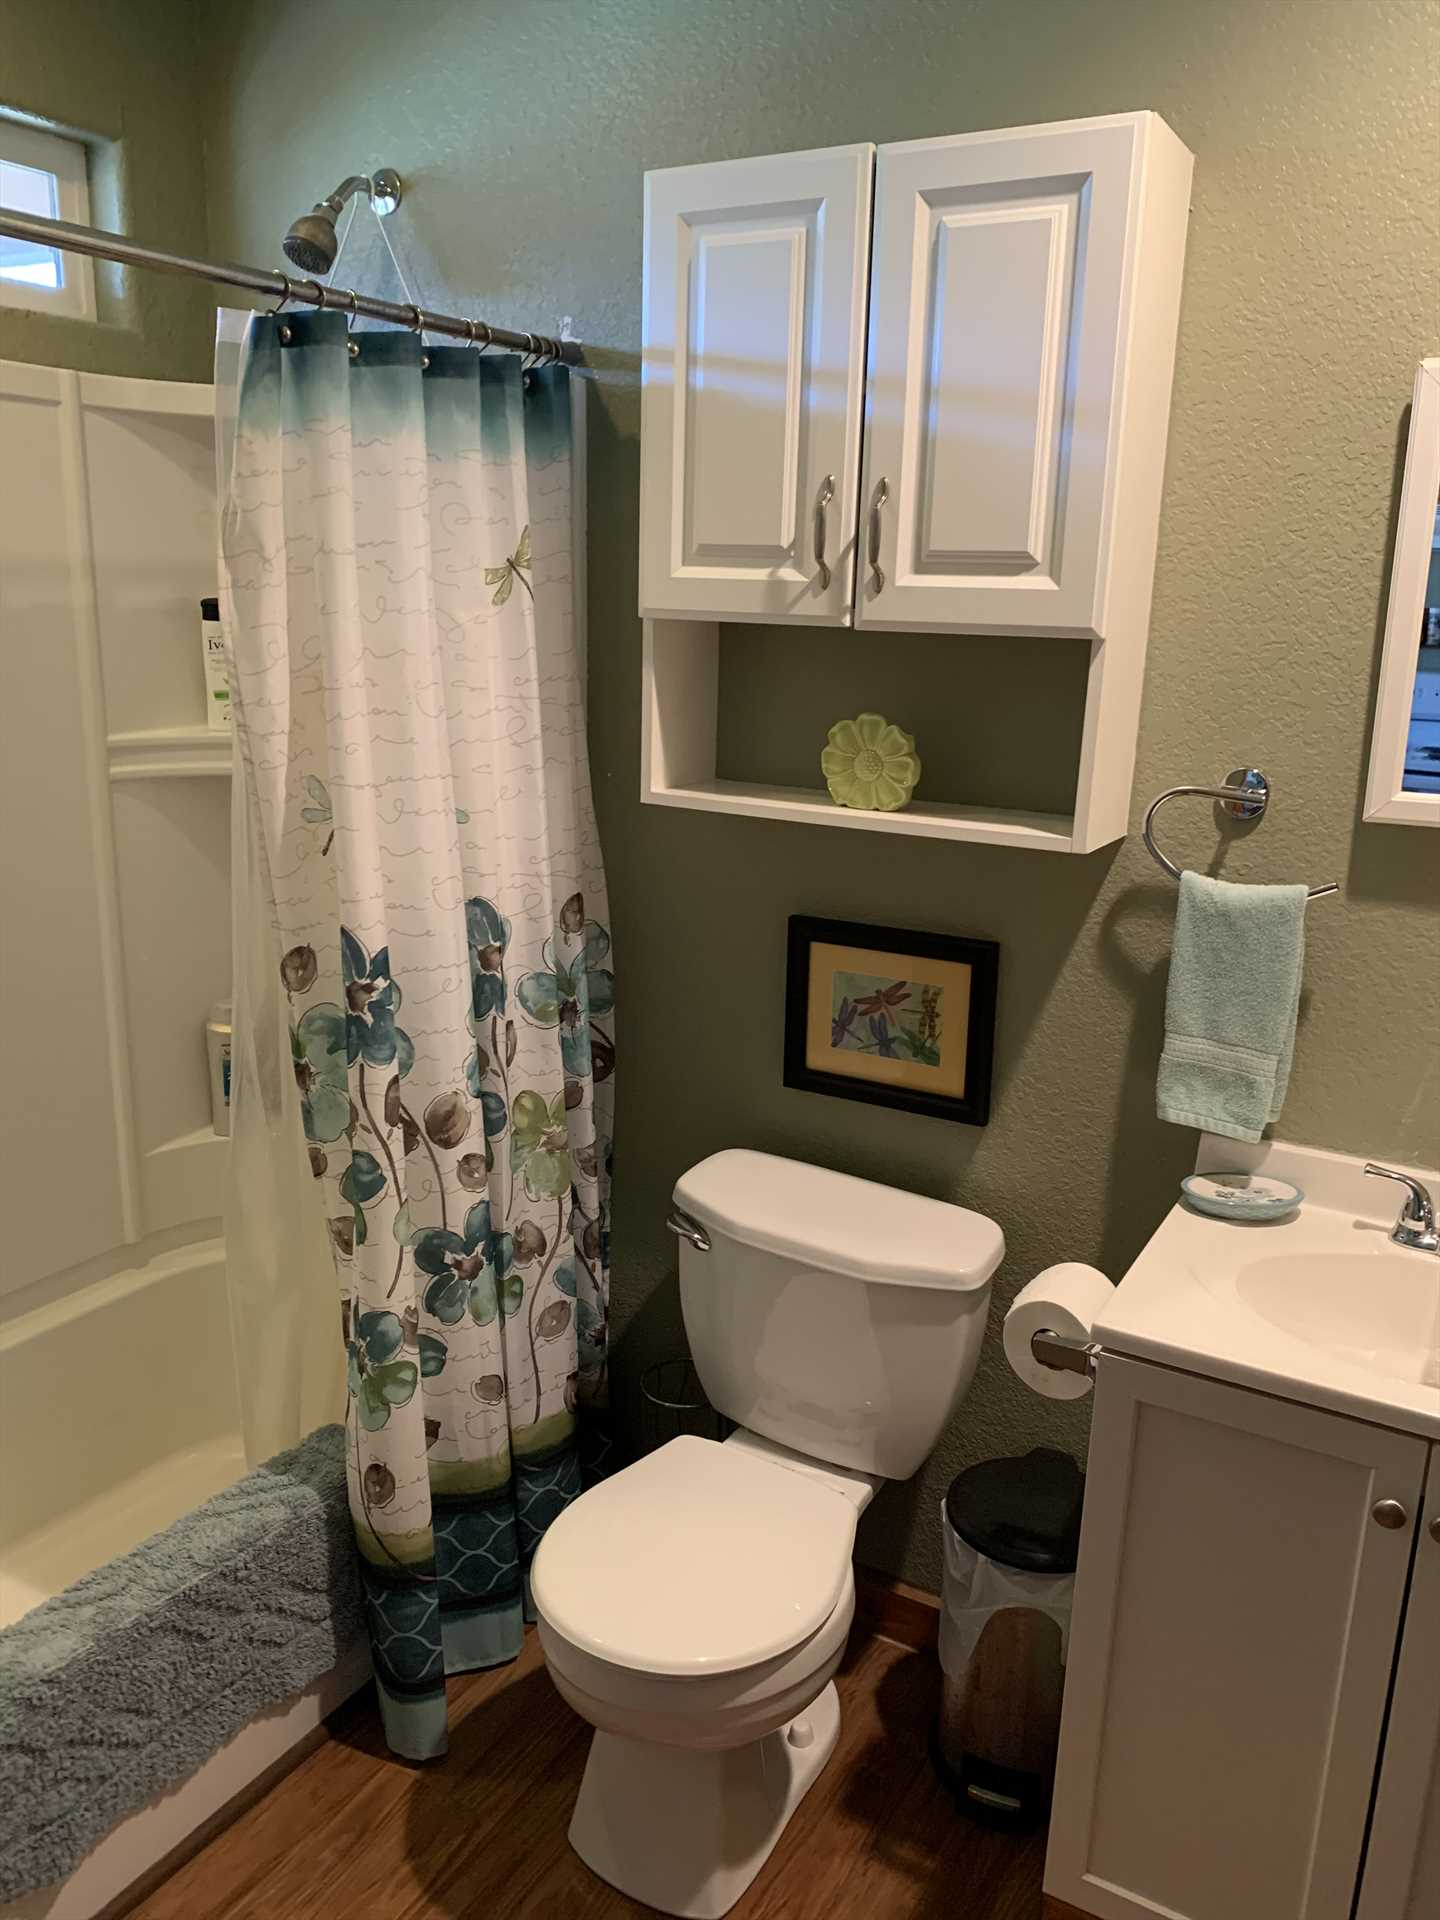 The full bath, and the bedroom, all come with their own complimentary linens. Hot tub and swimming towels are provided, too!